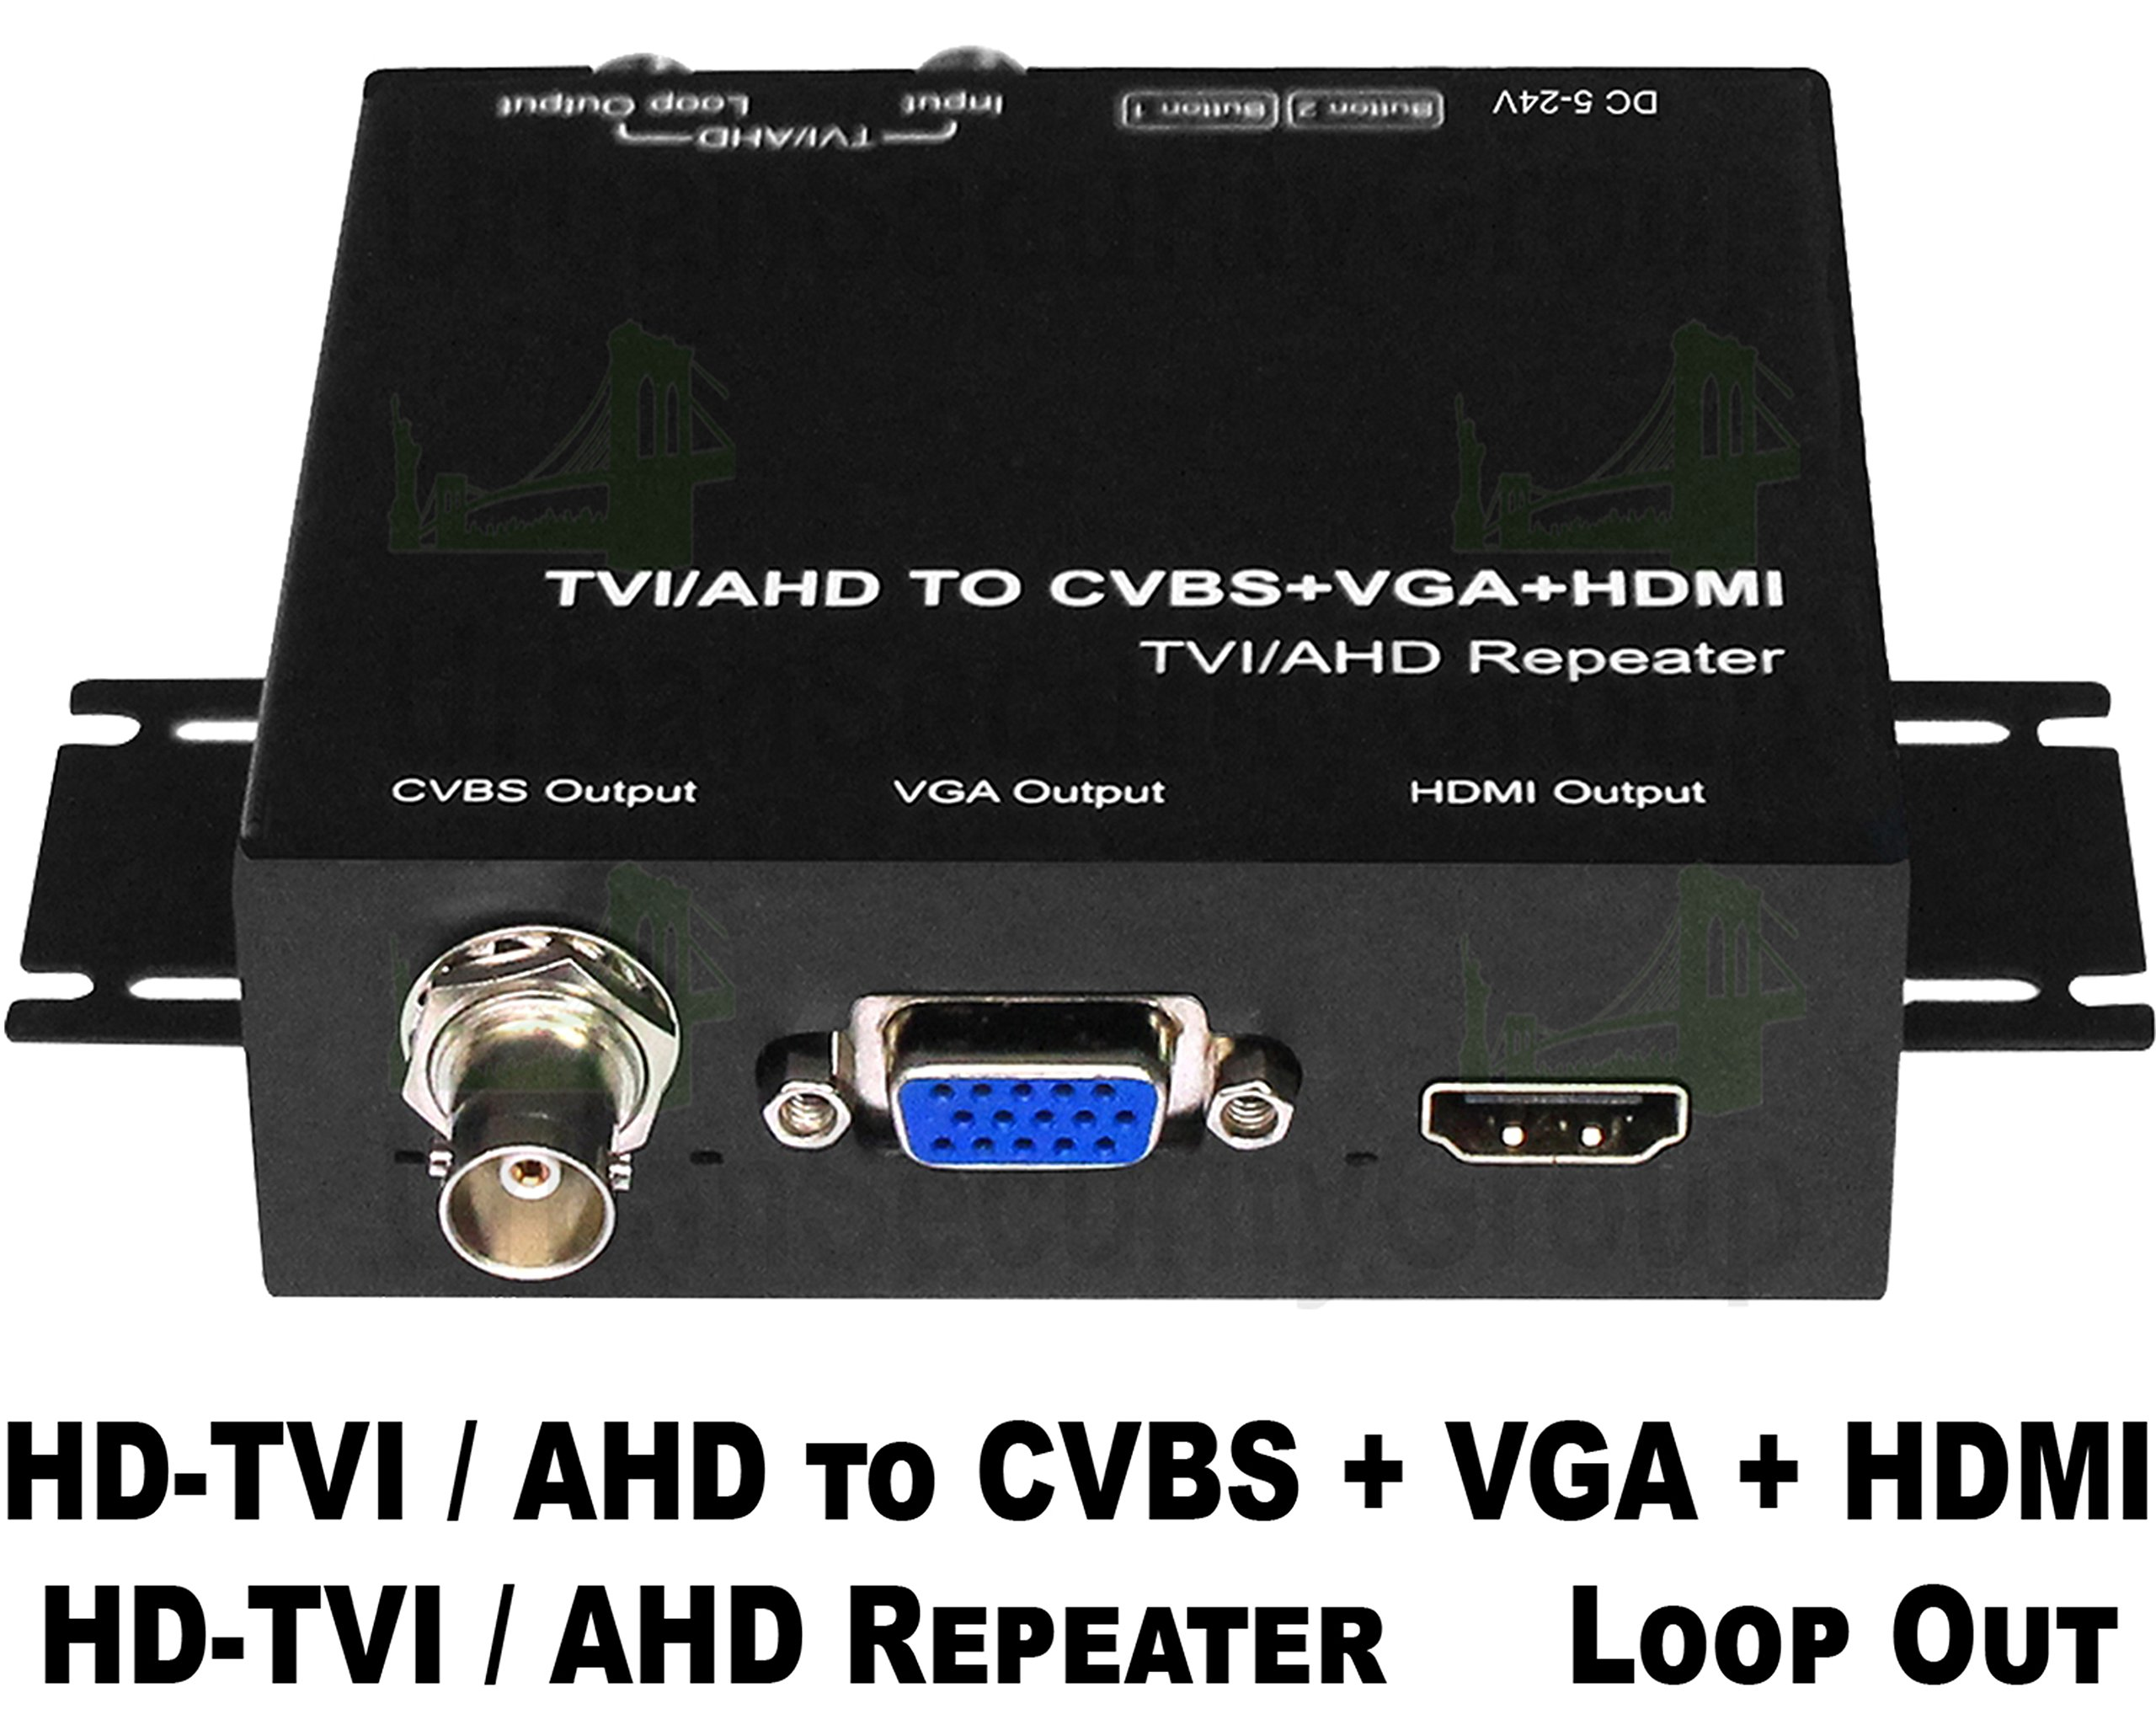 USG Business Grade HD-TVI and AHD Security Camera CCTV Format Signal Converter + Repeater + Loop Out : HD-TVI or AHD to HDMI + VGA + CVBS BNC + Loop Out : Up To 2MP 1080P : Power Supply Included